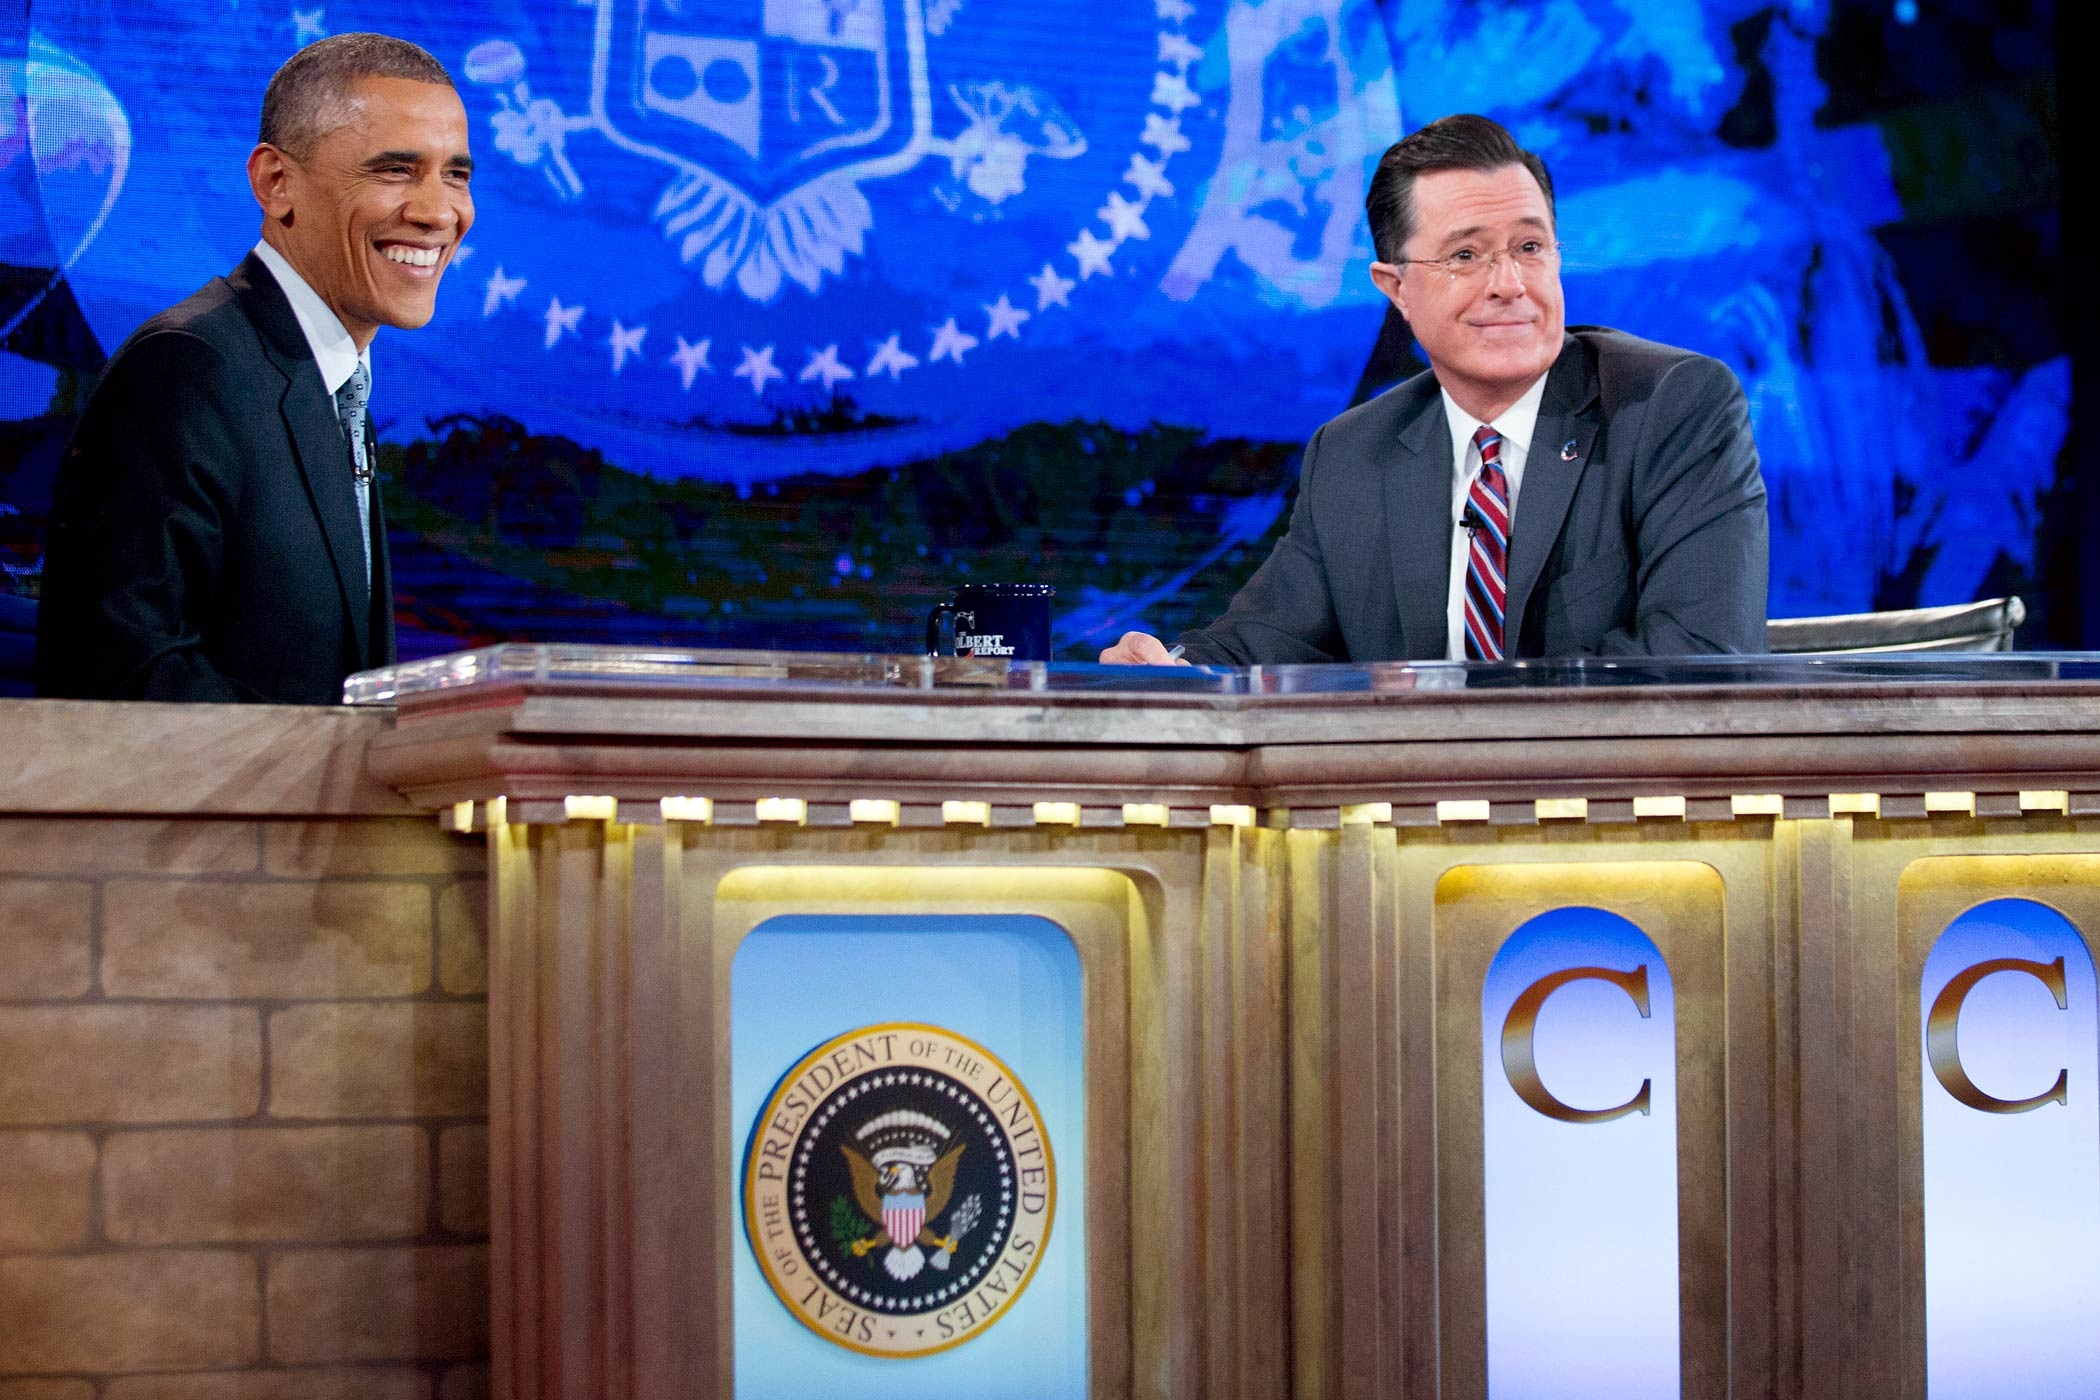 President Barack Obama talks to Stephen Colbert during a taping of The Colbert Report in Lisner Auditorium at George Washington University on Dec. 8, 2014 in Washington, DC.